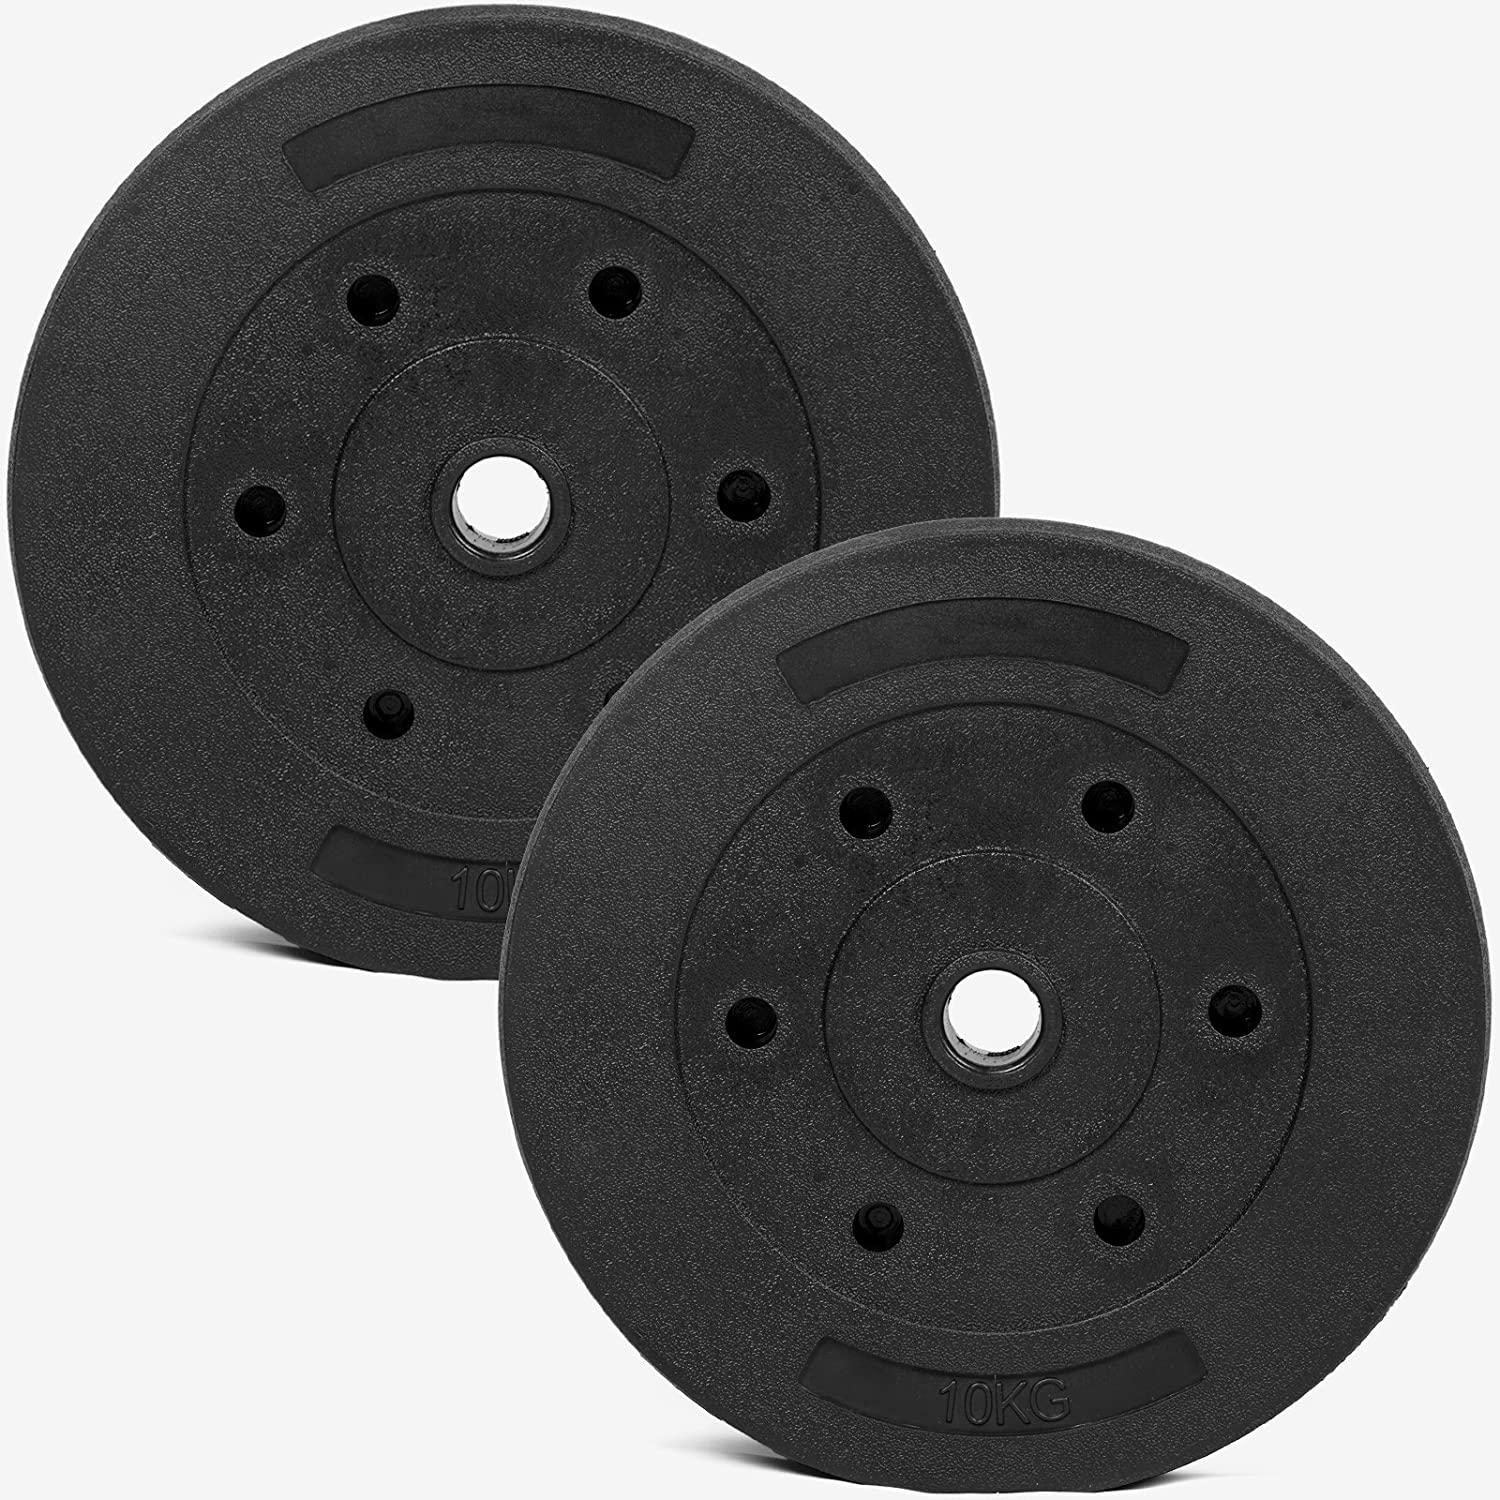 Gallant Standard 1 Inch Vinyl Weight Plates Set - 10KG Each, Available in 20KG, 40KG, 60KG, 80KG, 100KG sets Gallant Sports